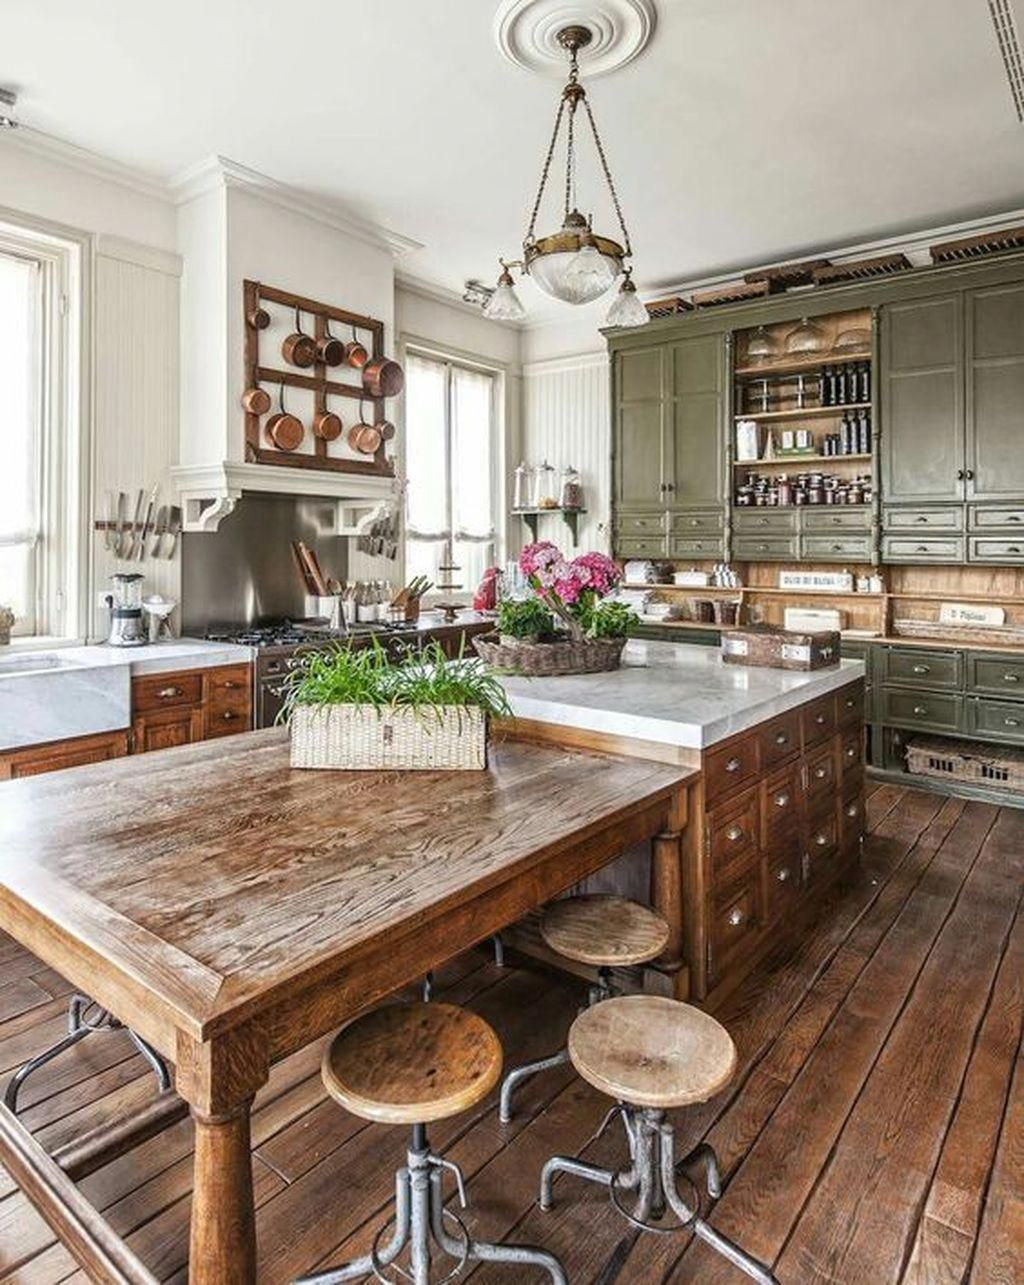 46 Inspiring Rustic Country Kitchen Ideas To Renew Your ...